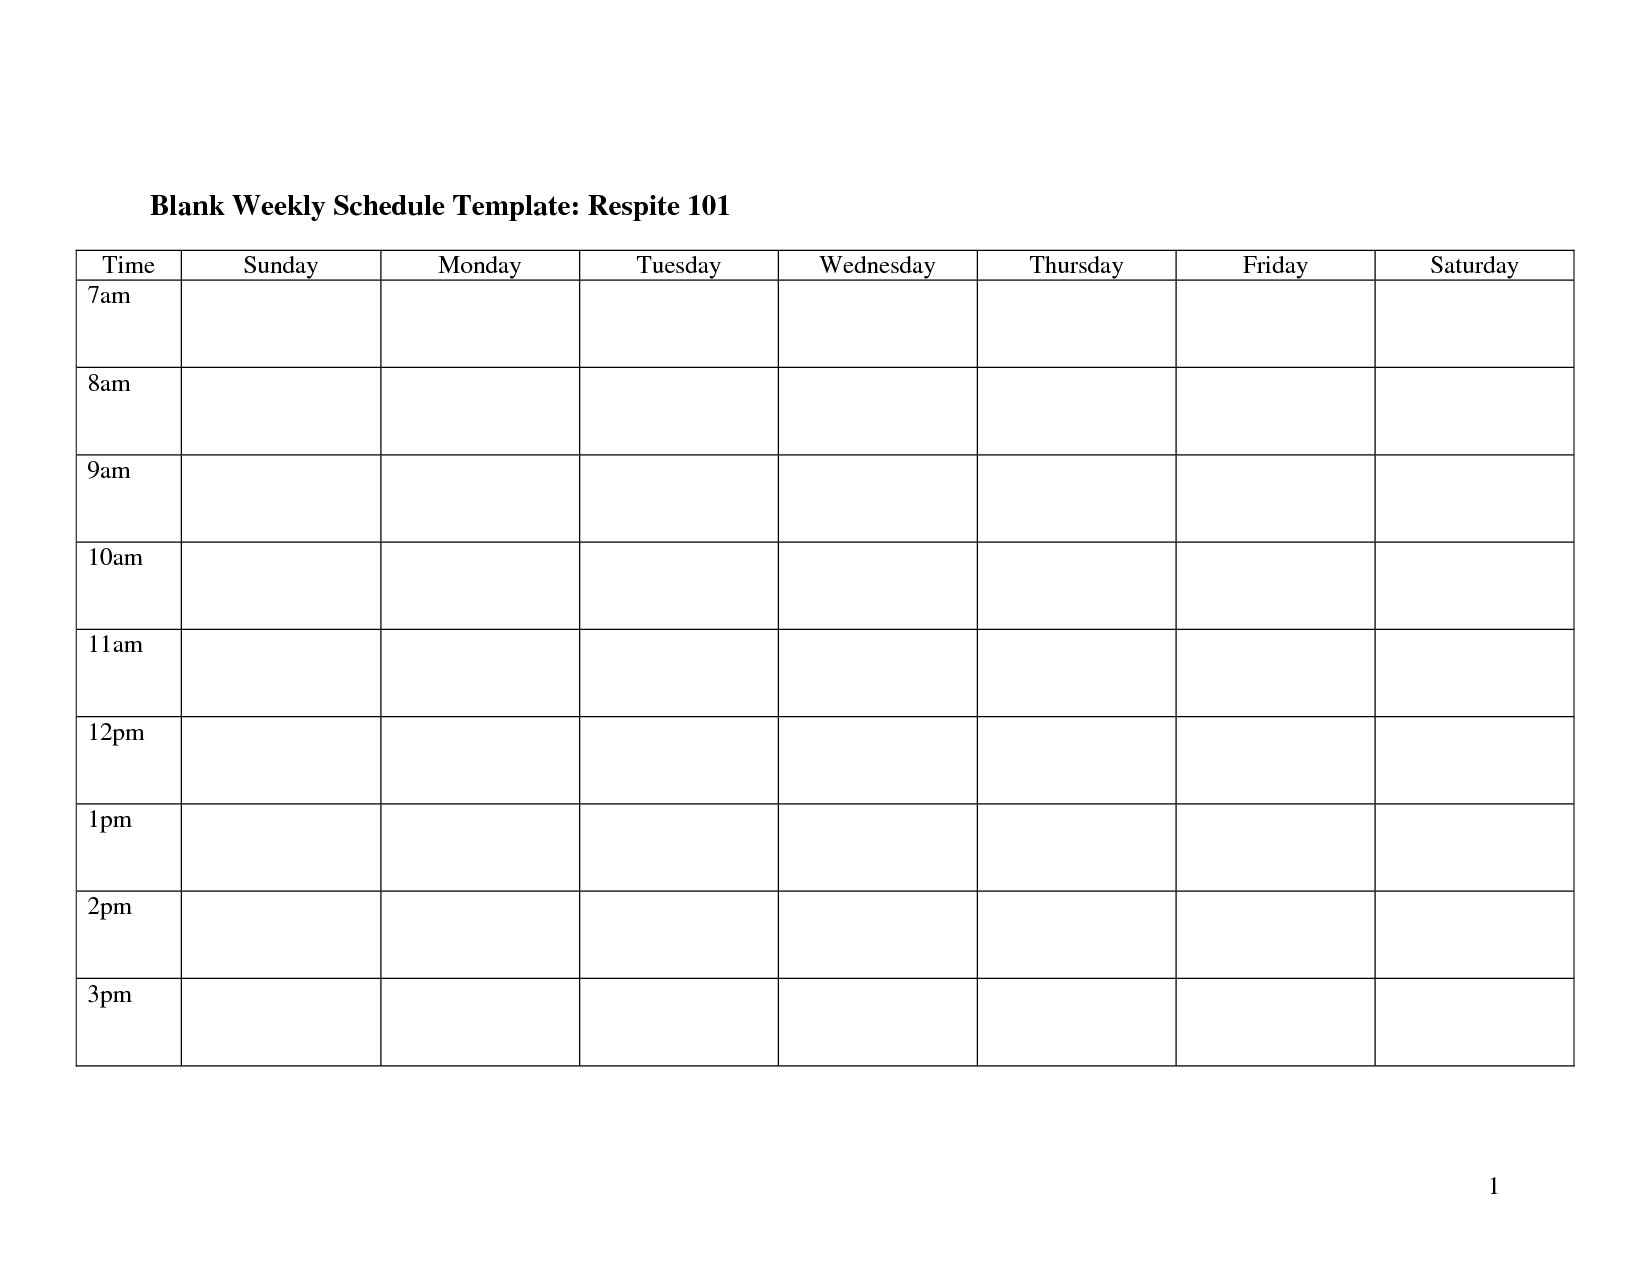 Weekly Schedule Monday Through Friday | Template Calendar Printable inside Monday Through Friday Blank Schedule Print Out